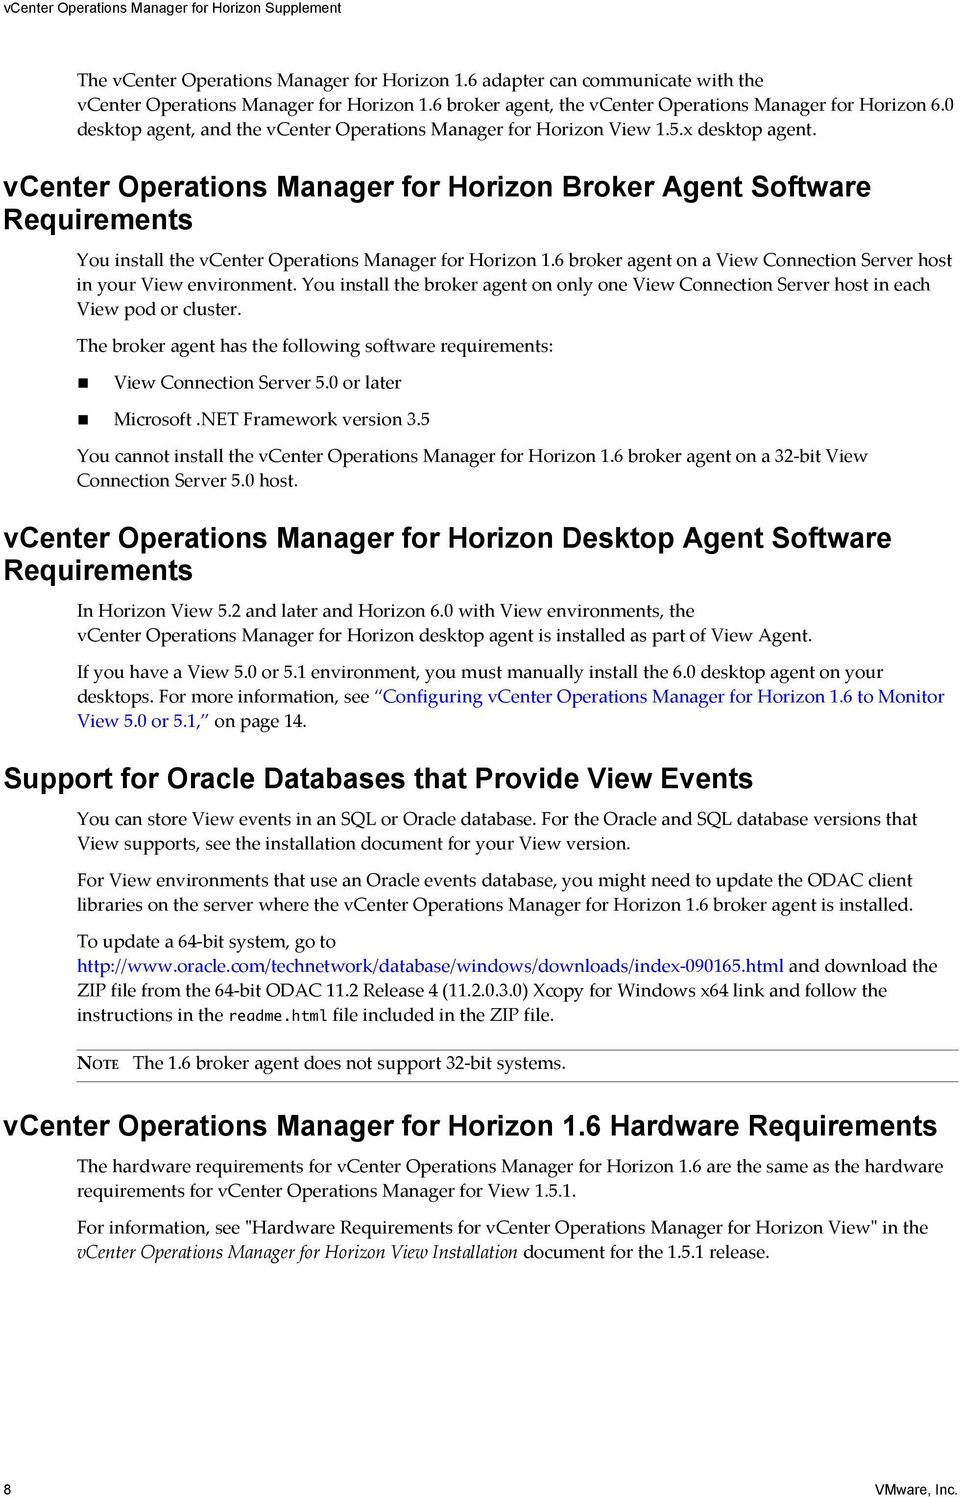 vcenter Operations Manager for Horizon Broker Agent Software Requirements You install the vcenter Operations Manager for Horizon 1.